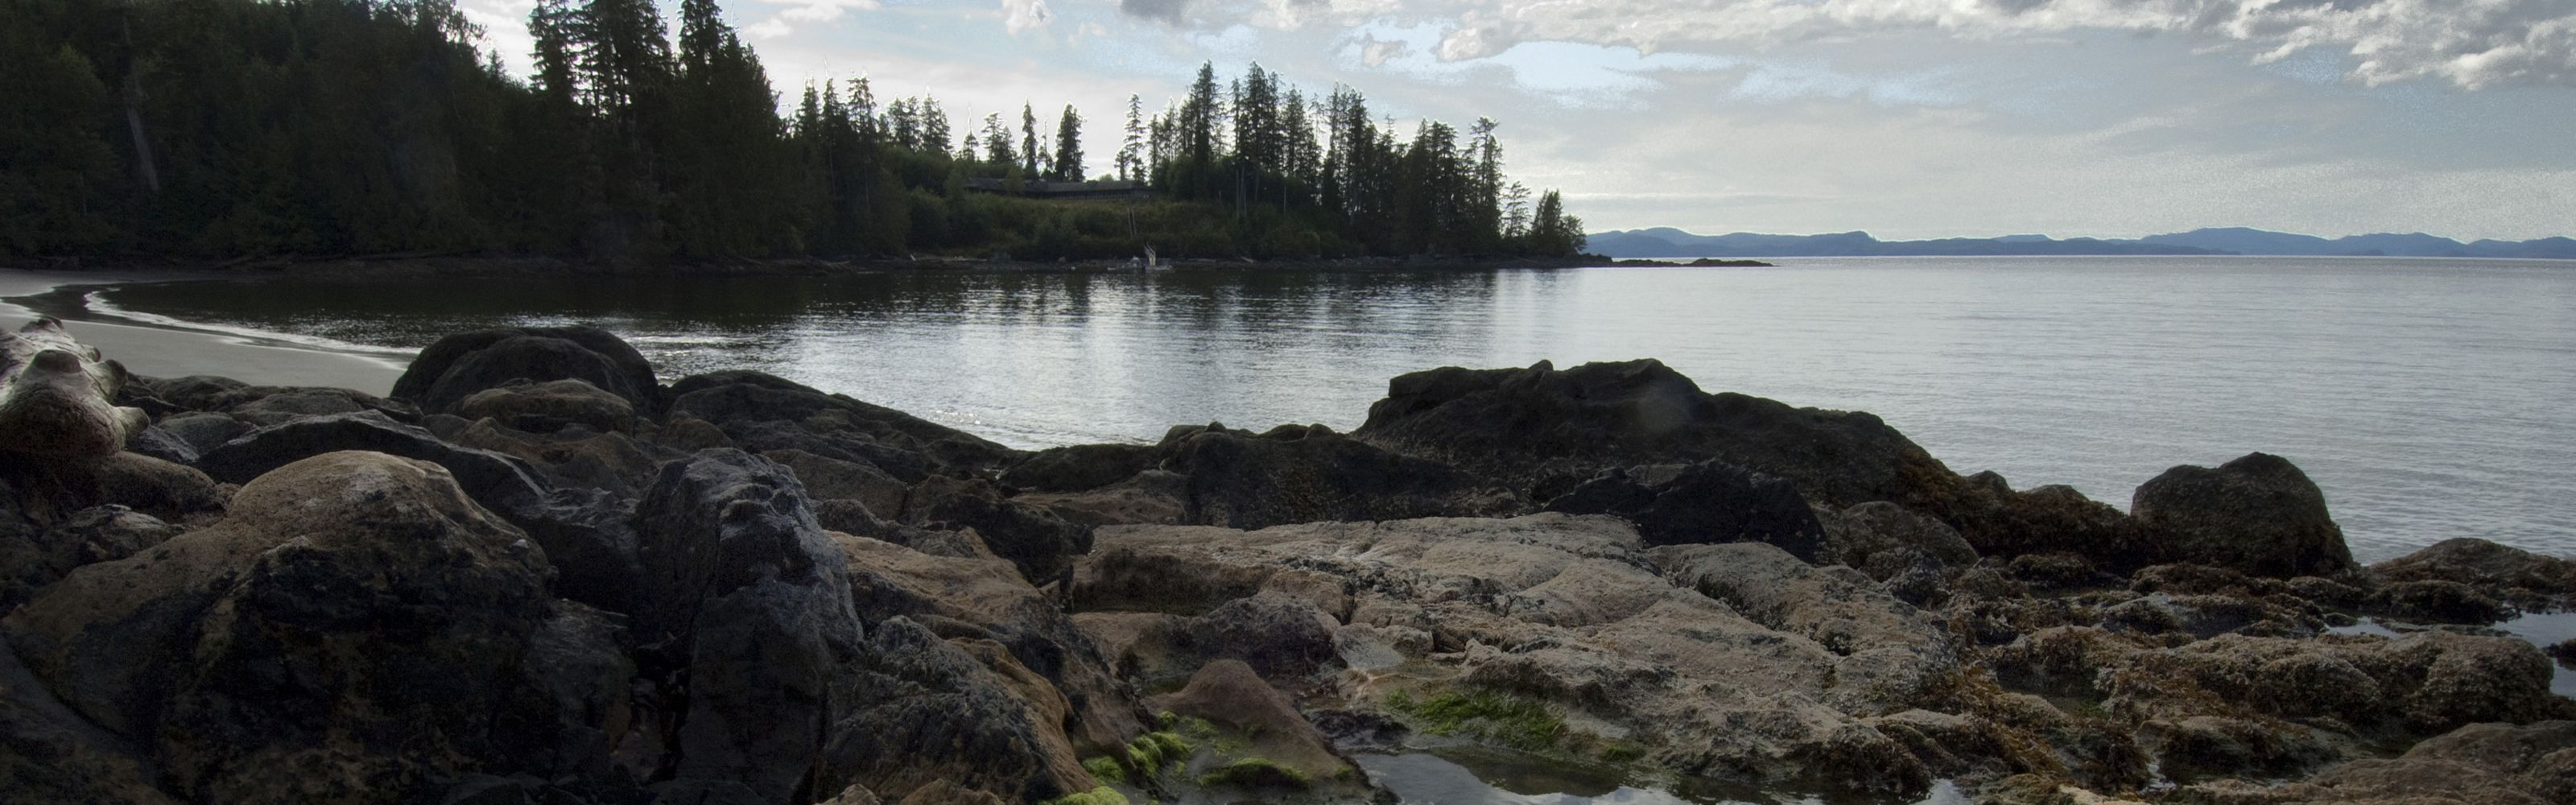 A rocky shoreline with tide pools lined with green vege